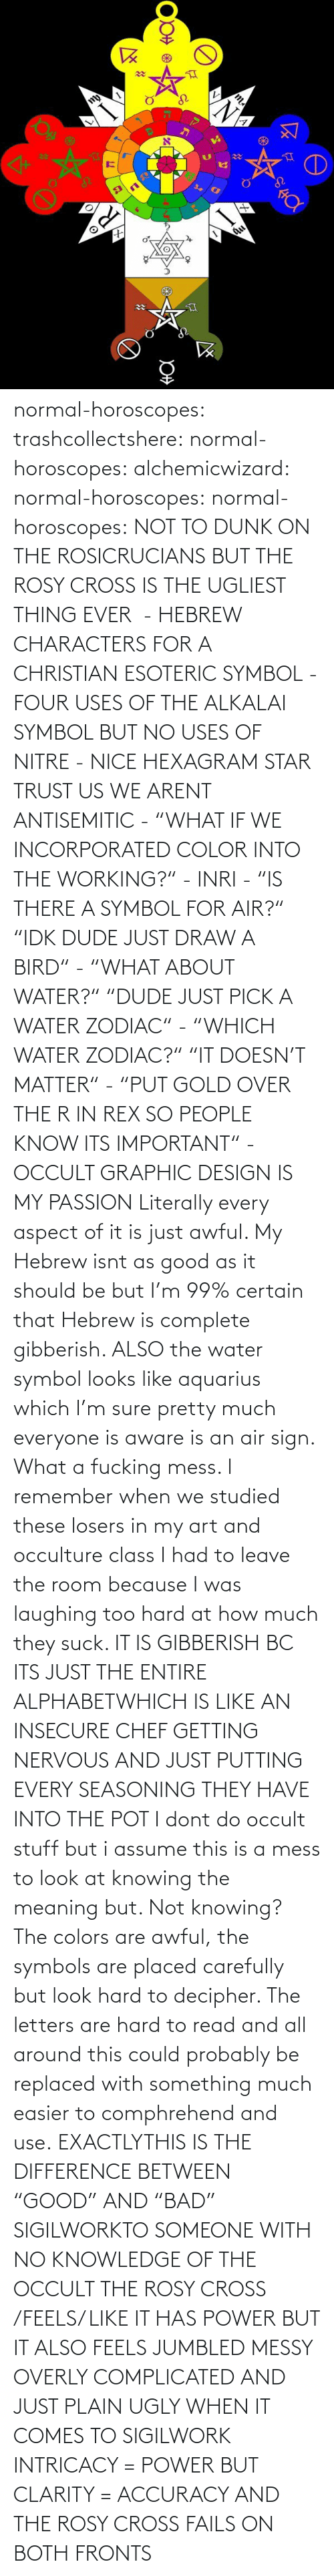 "Dude, Dunk, and Tumblr: normal-horoscopes:  trashcollectshere: normal-horoscopes:   alchemicwizard:  normal-horoscopes:  normal-horoscopes: NOT TO DUNK ON THE ROSICRUCIANS BUT THE ROSY CROSS IS THE UGLIEST THING EVER  - HEBREW CHARACTERS FOR A CHRISTIAN ESOTERIC SYMBOL - FOUR USES OF THE ALKALAI SYMBOL BUT NO USES OF NITRE - NICE HEXAGRAM STAR TRUST US WE ARENT ANTISEMITIC - ""WHAT IF WE INCORPORATED COLOR INTO THE WORKING?"" - INRI - ""IS THERE A SYMBOL FOR AIR?"" ""IDK DUDE JUST DRAW A BIRD"" - ""WHAT ABOUT WATER?"" ""DUDE JUST PICK A WATER ZODIAC"" - ""WHICH WATER ZODIAC?"" ""IT DOESN'T MATTER"" - ""PUT GOLD OVER THE R IN REX SO PEOPLE KNOW ITS IMPORTANT"" - OCCULT GRAPHIC DESIGN IS MY PASSION  Literally every aspect of it is just awful. My Hebrew isnt as good as it should be but I'm 99% certain that Hebrew is complete gibberish.  ALSO the water symbol looks like aquarius which I'm sure pretty much everyone is aware is an air sign. What a fucking mess.  I remember when we studied these losers in my art and occulture class I had to leave the room because I was laughing too hard at how much they suck.   IT IS GIBBERISH BC ITS JUST THE ENTIRE ALPHABETWHICH IS LIKE AN INSECURE CHEF GETTING NERVOUS AND JUST PUTTING EVERY SEASONING THEY HAVE INTO THE POT     I dont do occult stuff but i assume this is a mess to look at knowing the meaning but. Not knowing? The colors are awful, the symbols are placed carefully but look hard to decipher. The letters are hard to read and all around this could probably be replaced with something much easier to comphrehend and use.  EXACTLYTHIS IS THE DIFFERENCE BETWEEN ""GOOD"" AND ""BAD"" SIGILWORKTO SOMEONE WITH NO KNOWLEDGE OF THE OCCULT THE ROSY CROSS /FEELS/ LIKE IT HAS POWER BUT IT ALSO FEELS JUMBLED MESSY OVERLY COMPLICATED AND JUST PLAIN UGLY WHEN IT COMES TO SIGILWORK INTRICACY = POWER BUT CLARITY = ACCURACY AND THE ROSY CROSS FAILS ON BOTH FRONTS"